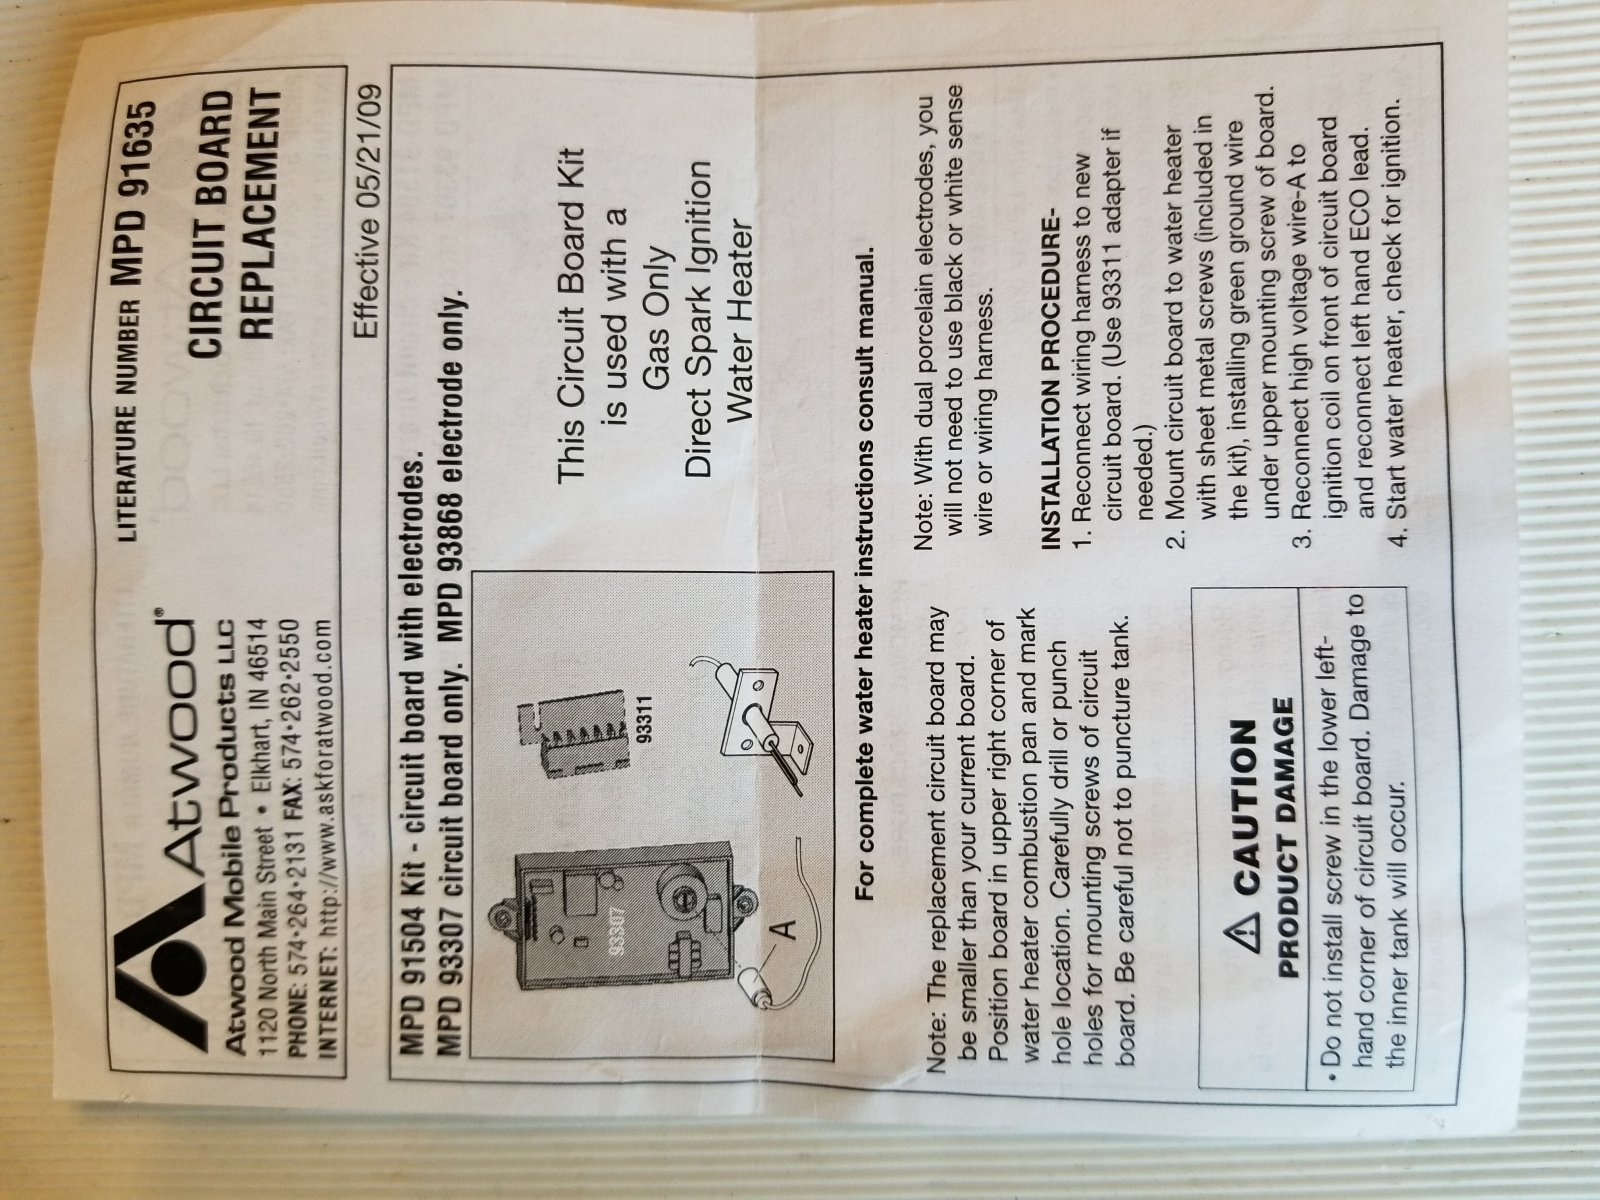 Atwood Water Heater Not Igniting - Airstream Forums